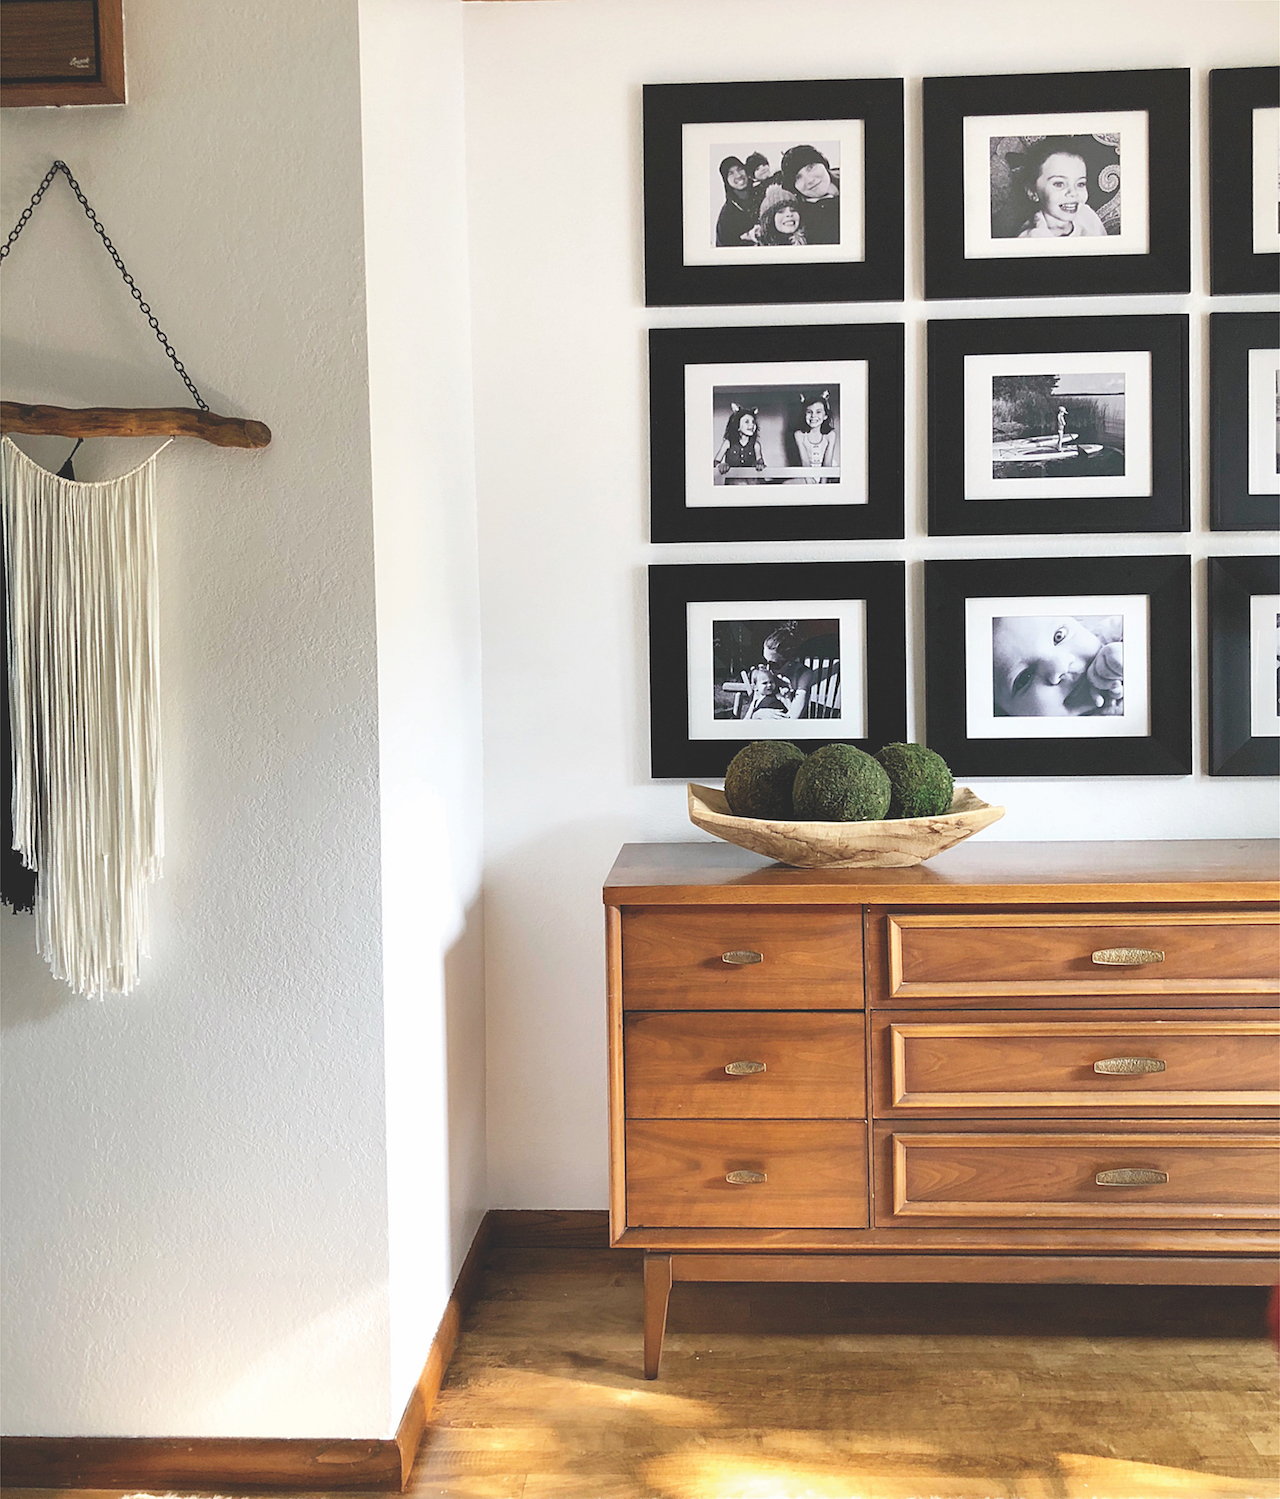 gallery wall-neatly ordered black frames fill a wall above a sideboard